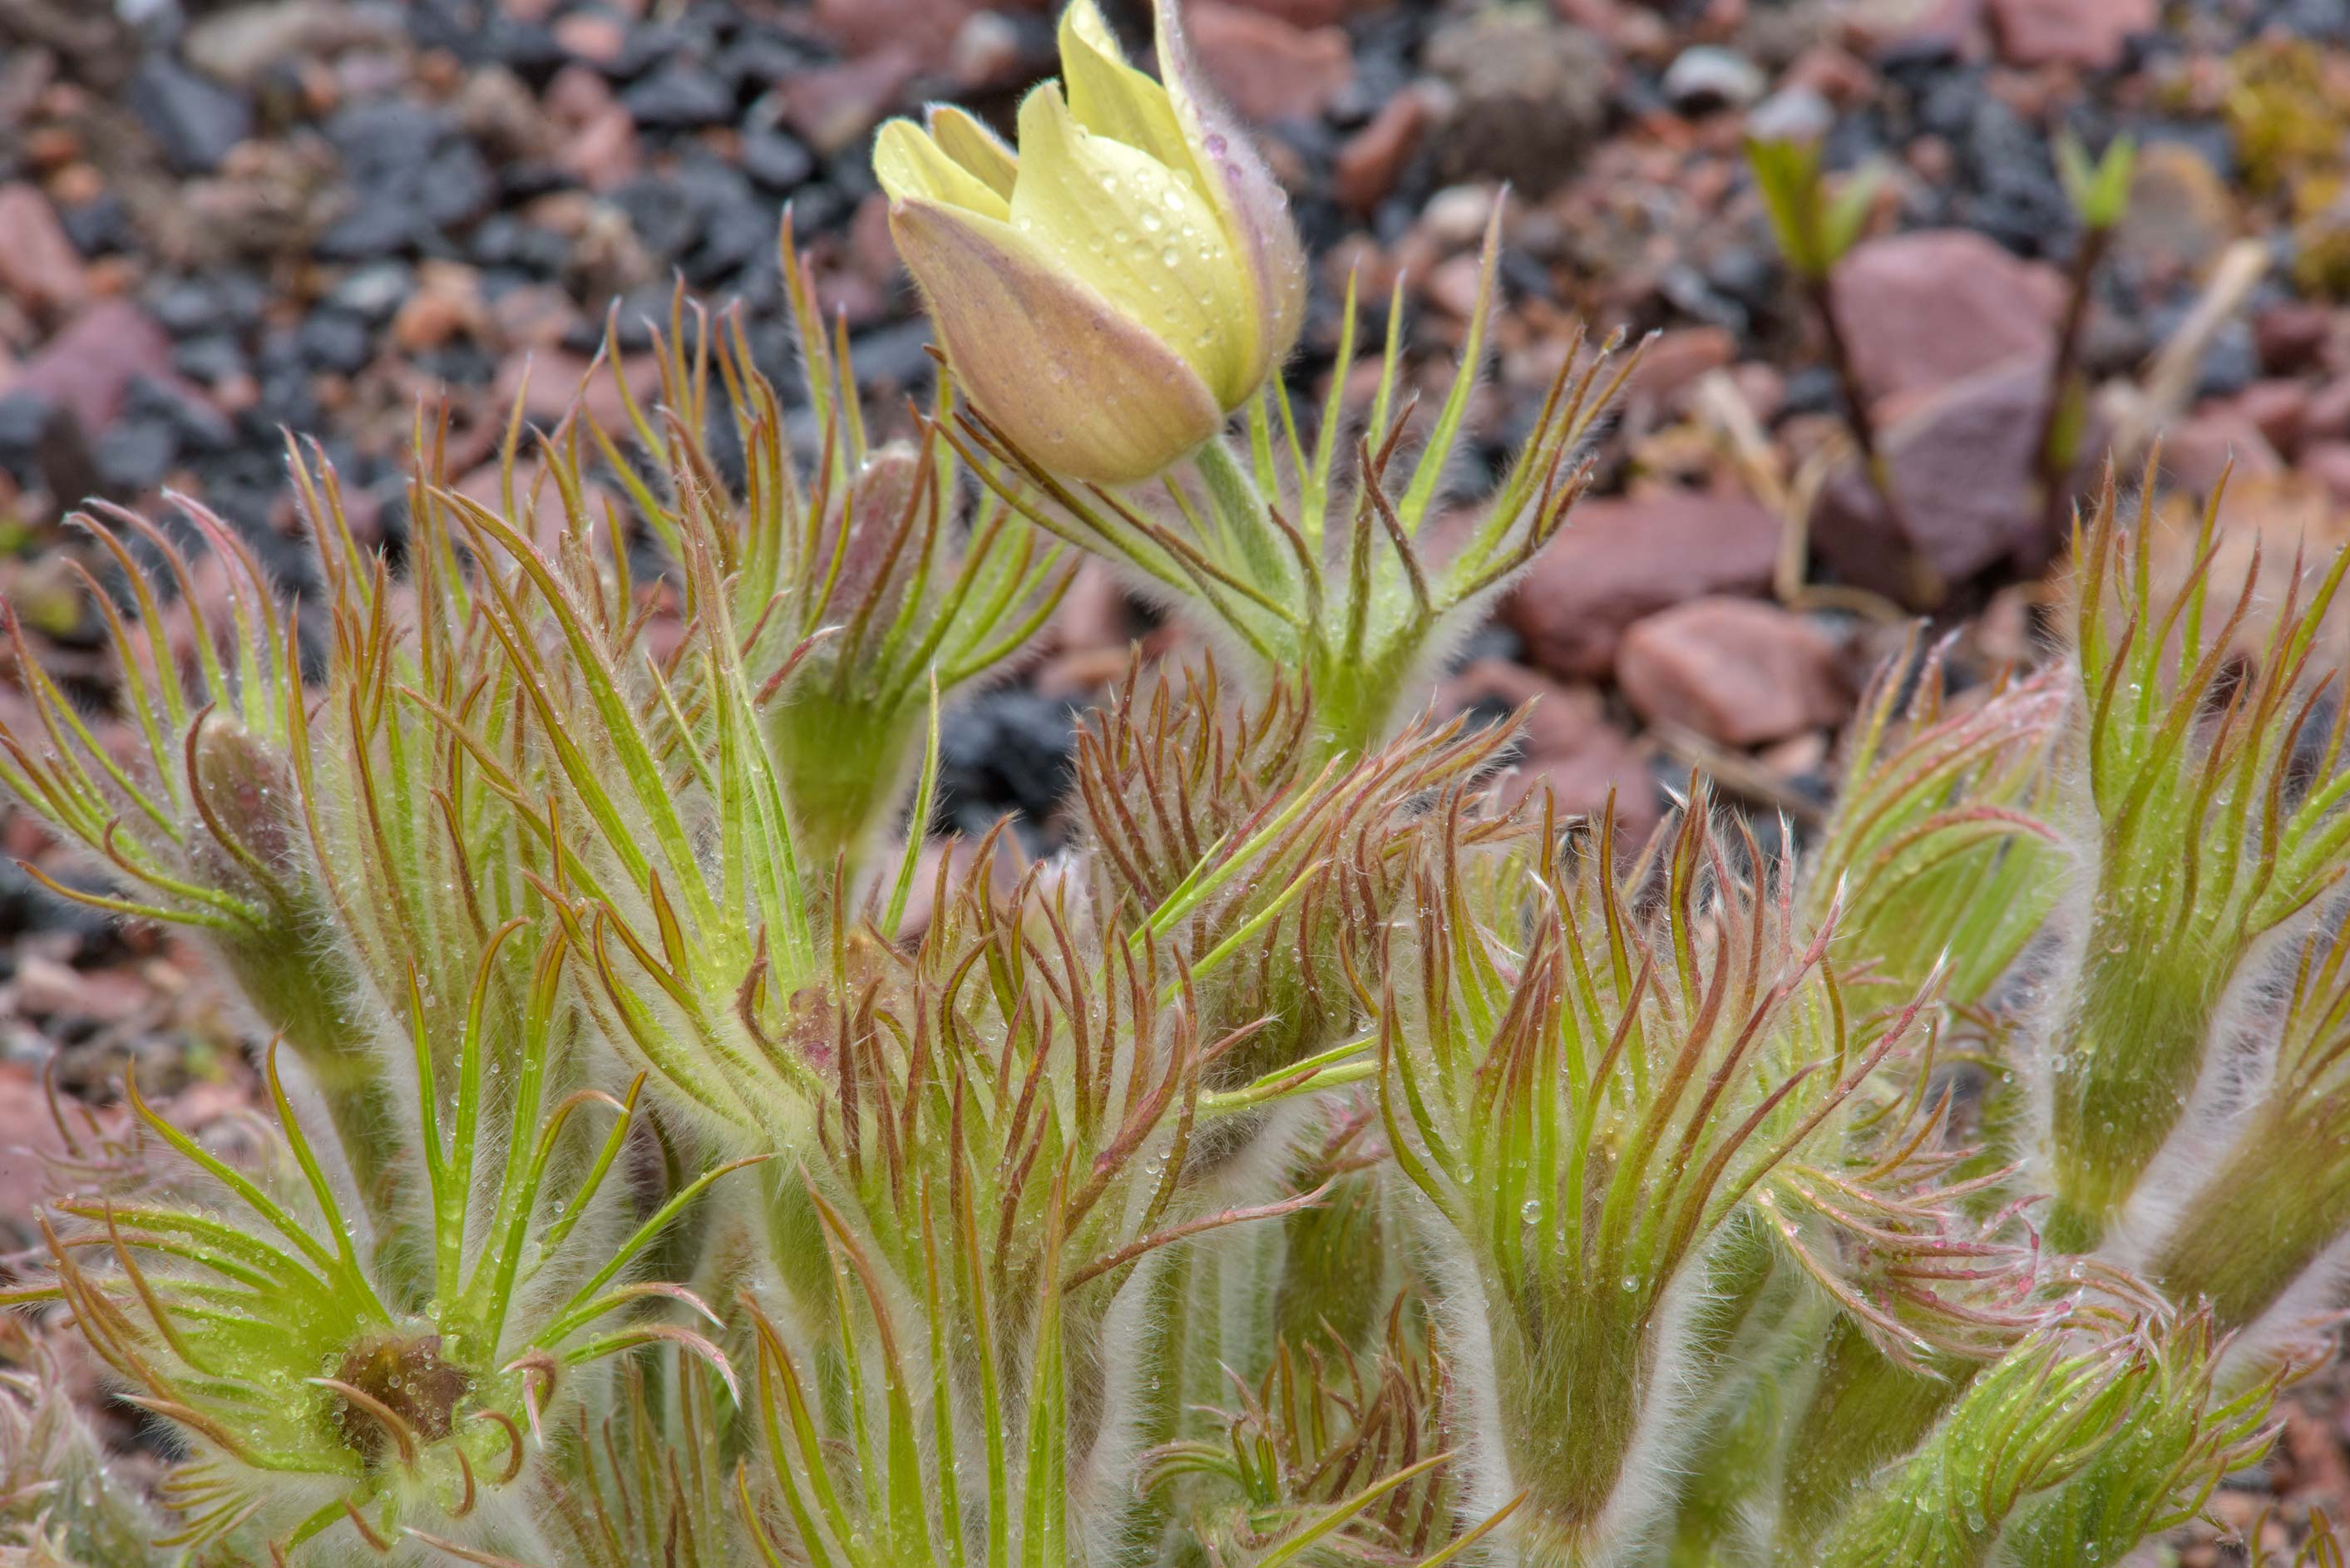 Shoots of yellow pasque flower (Pulsatilla) in...Institute. St.Petersburg, Russia